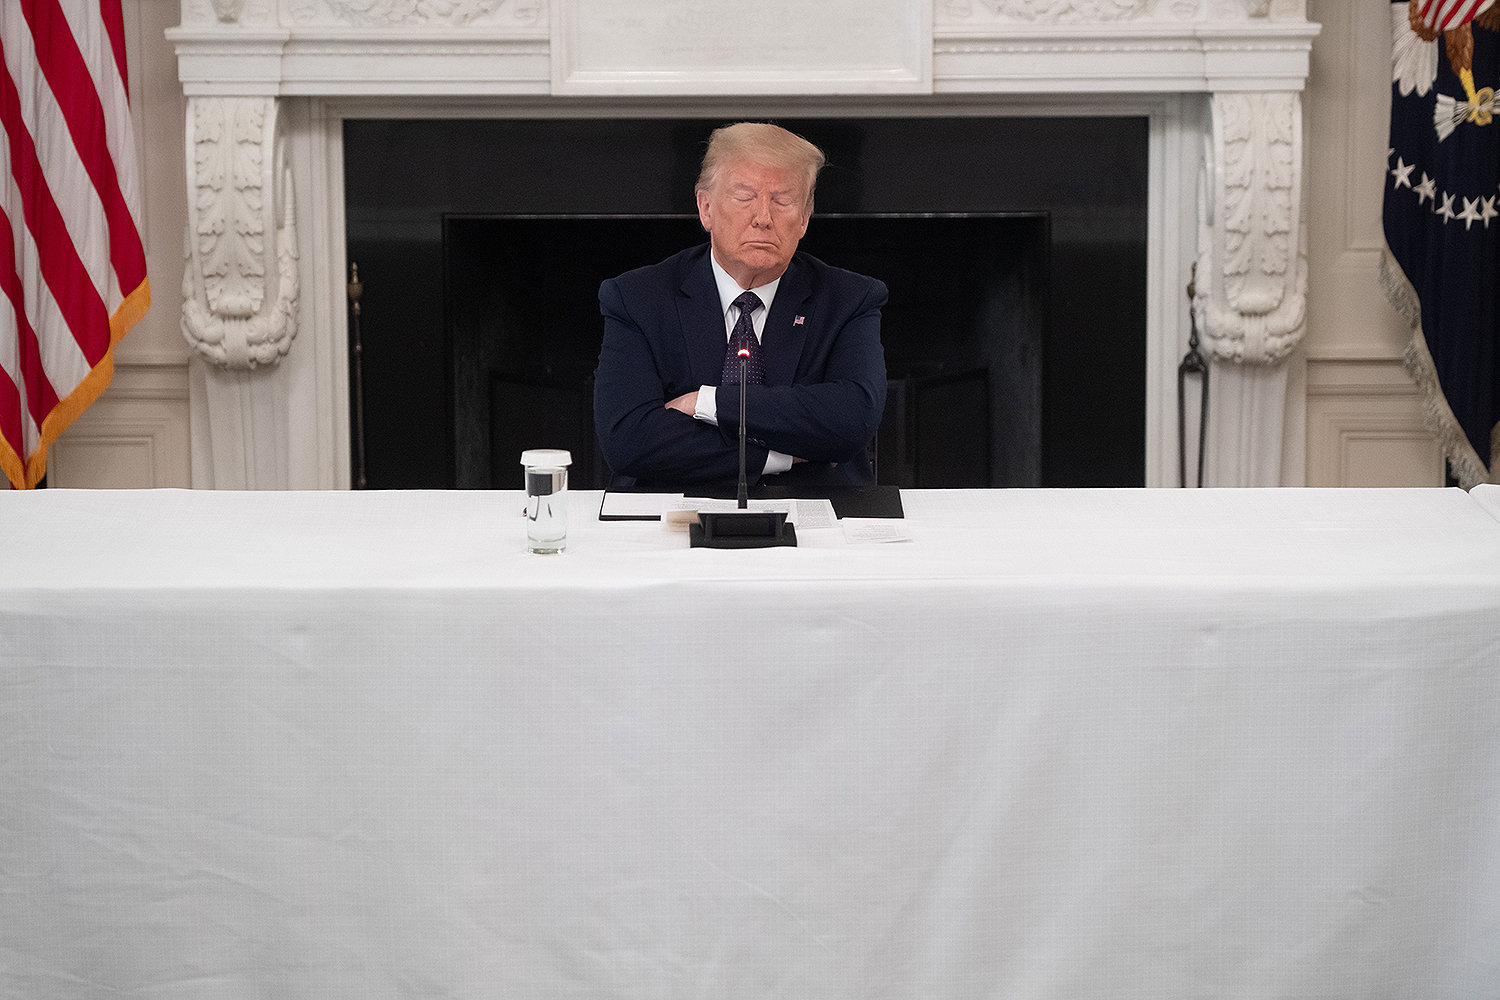 U.S. President Donald Trump hosts a roundtable discussion with law enforcement officials on police and community relations in the White House in Washington, D.C., on June 8. SAUL LOEB/AFP via Getty Images